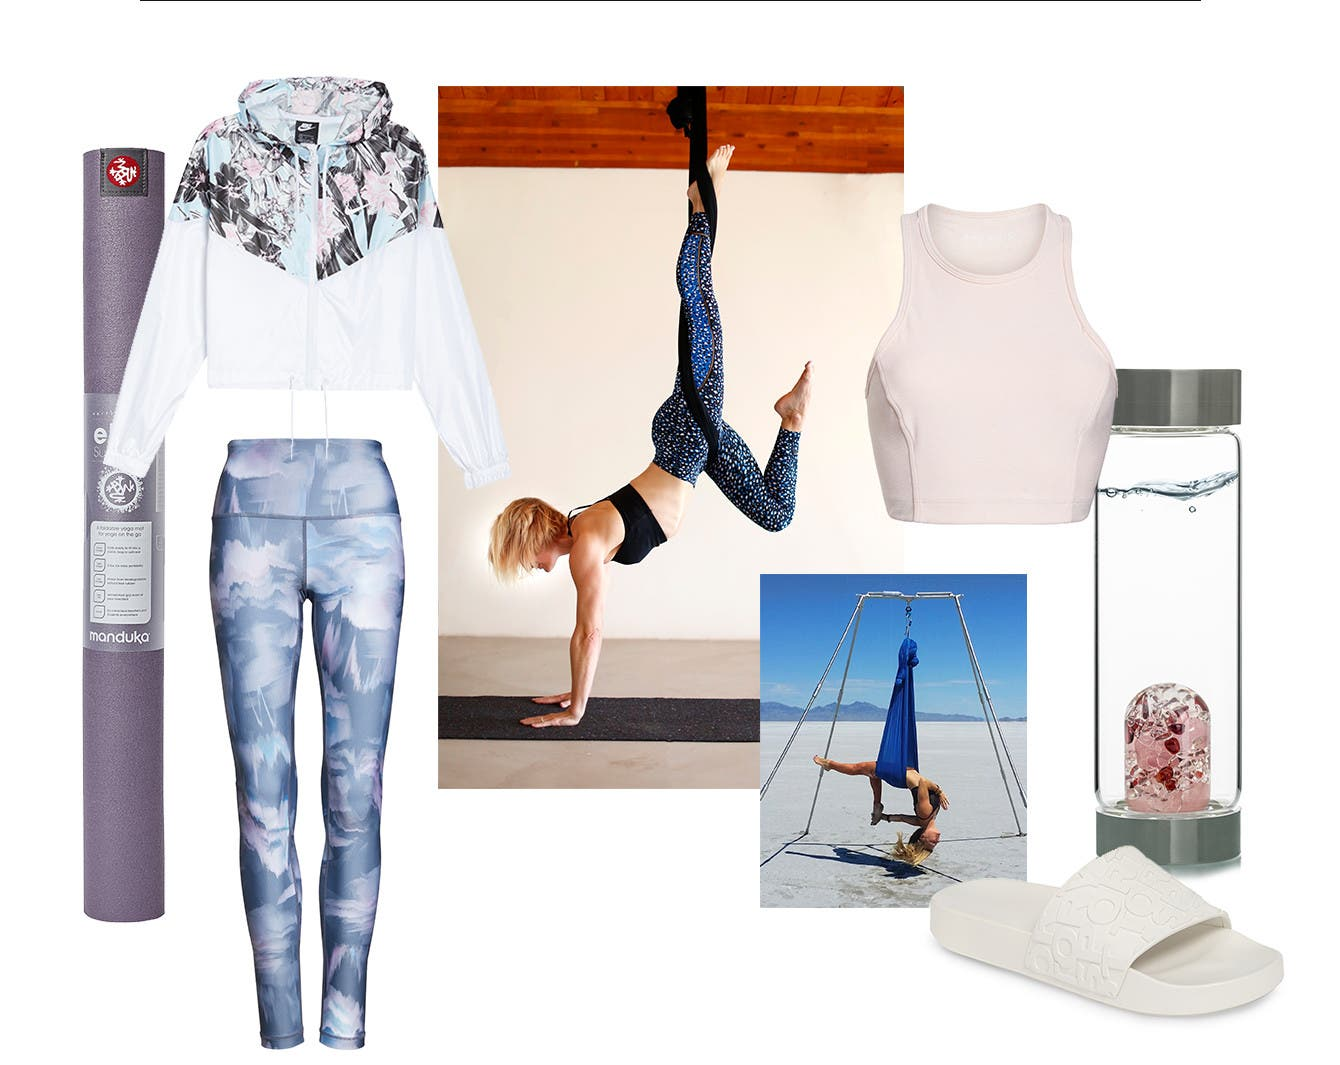 Fitness fix: aerial yoga clothing and gear.